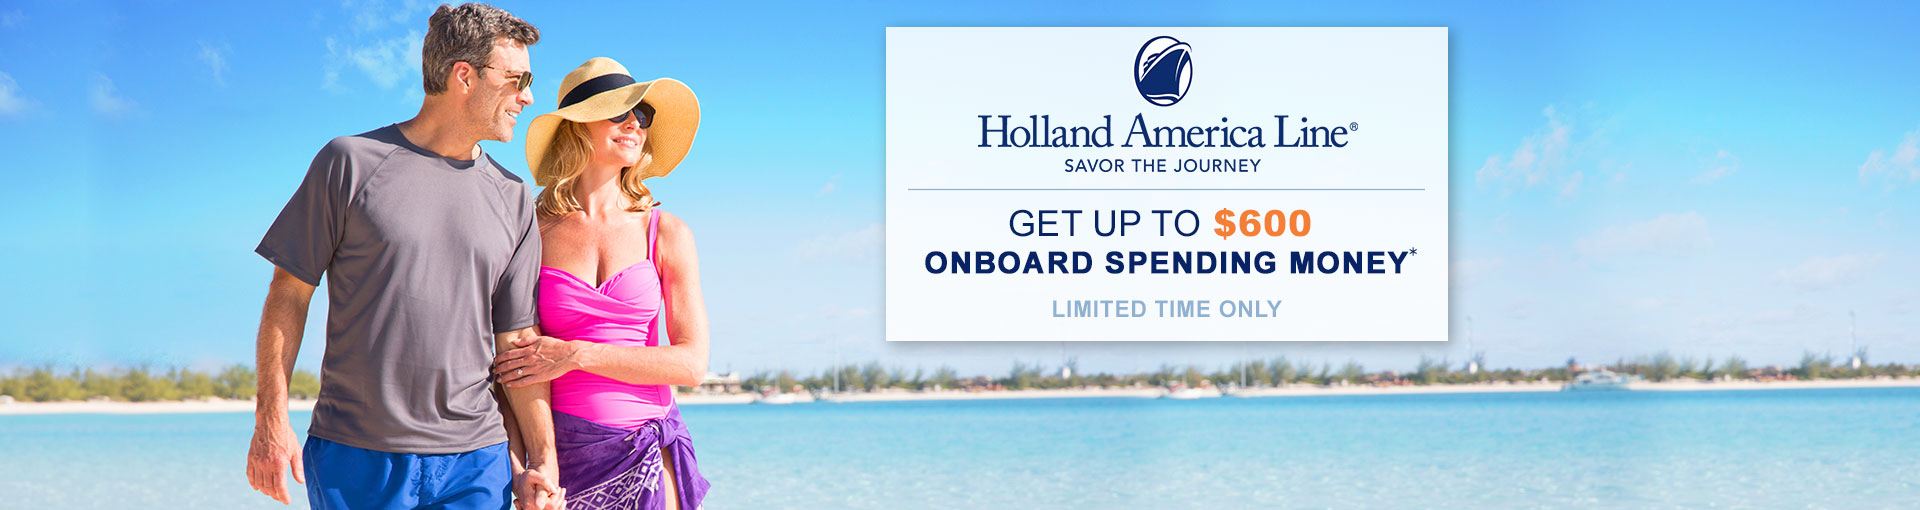 Holland America Line: Up to $600 Onboard Spending Money